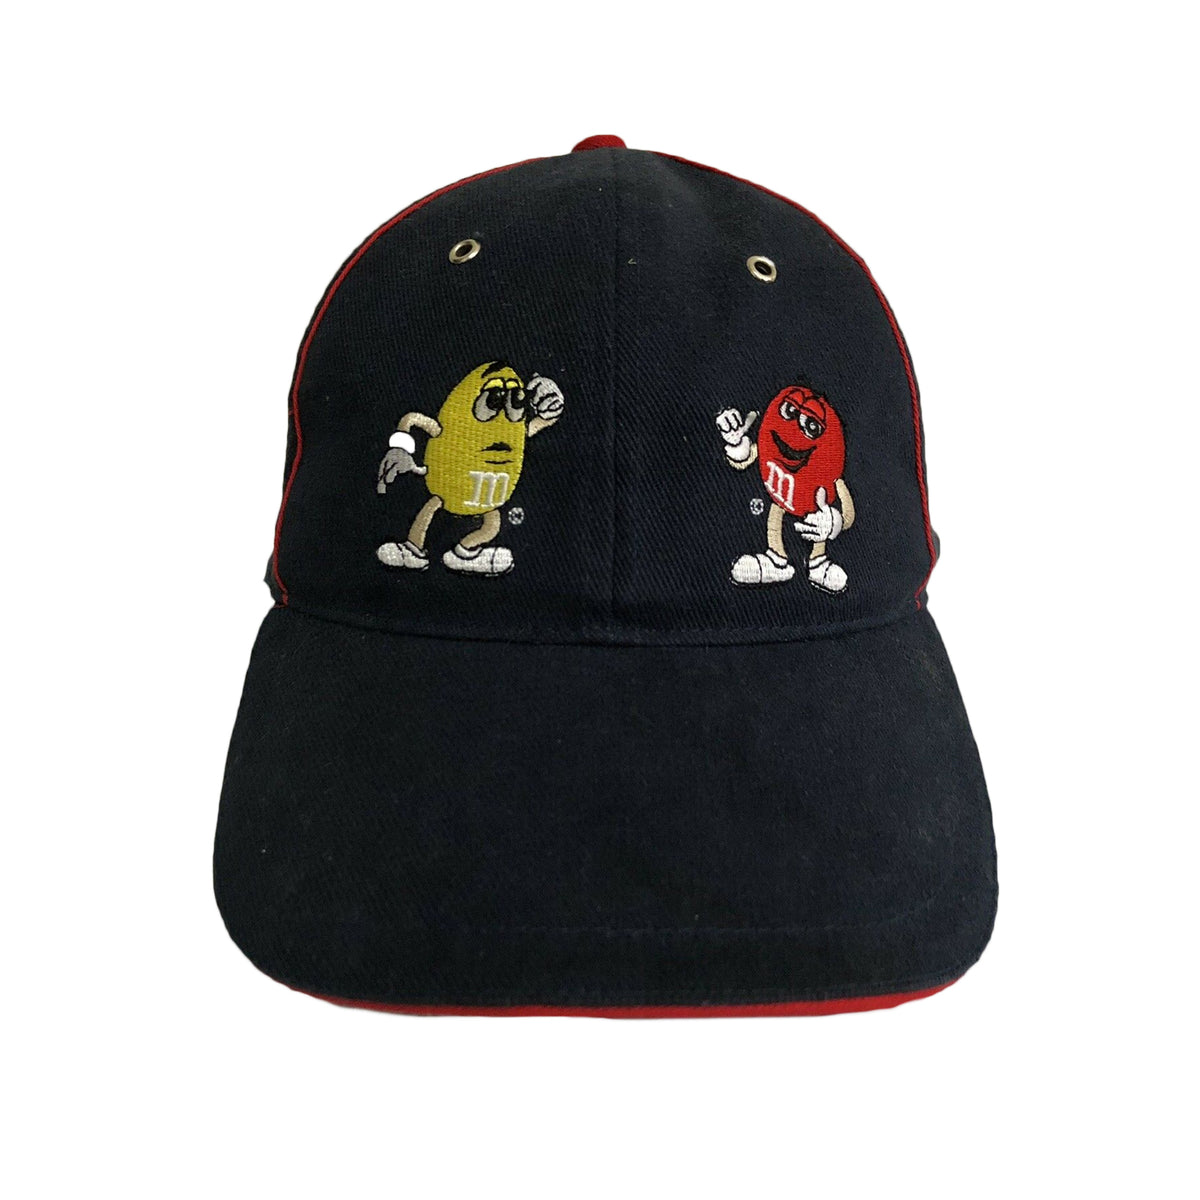 M&M's Chocolate Vintage Strapback Cap